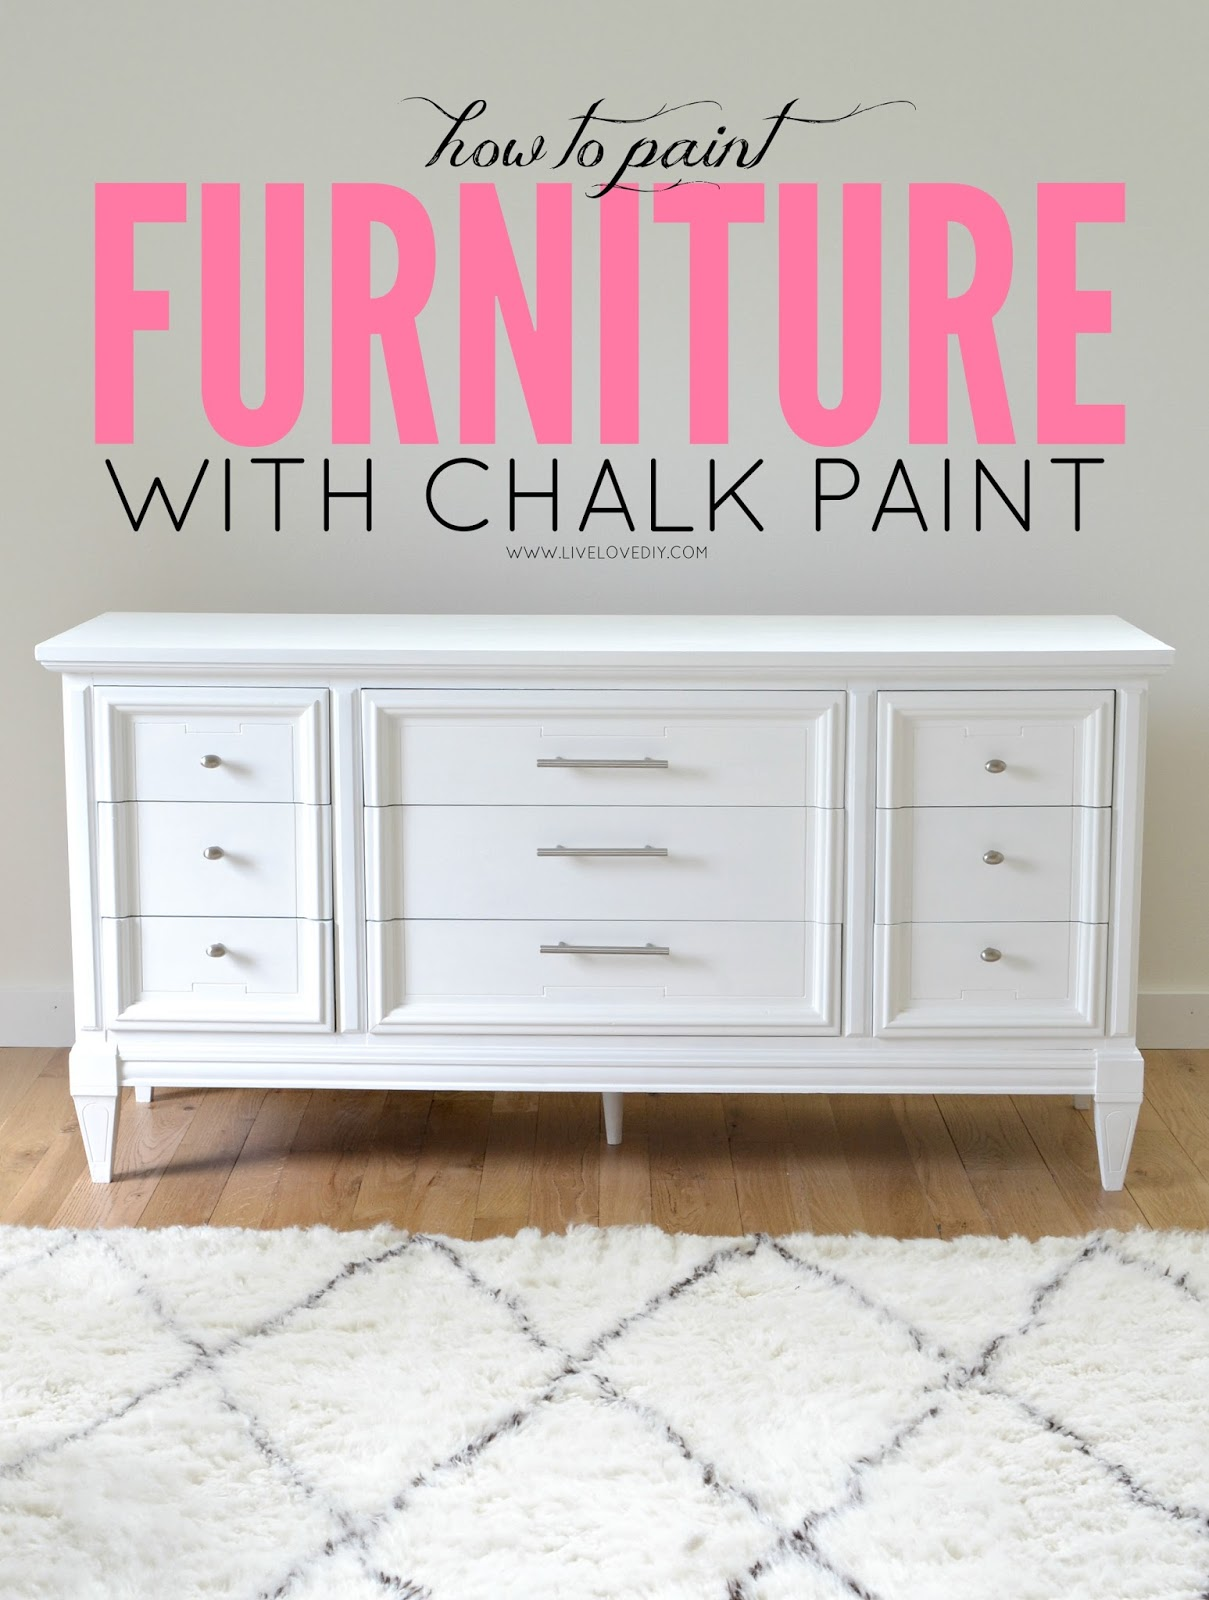 Spray Paint Furniture Ideas Part - 34: How To Paint Furniture With Chalk Paint (and How To Survive A DIY Disaster)